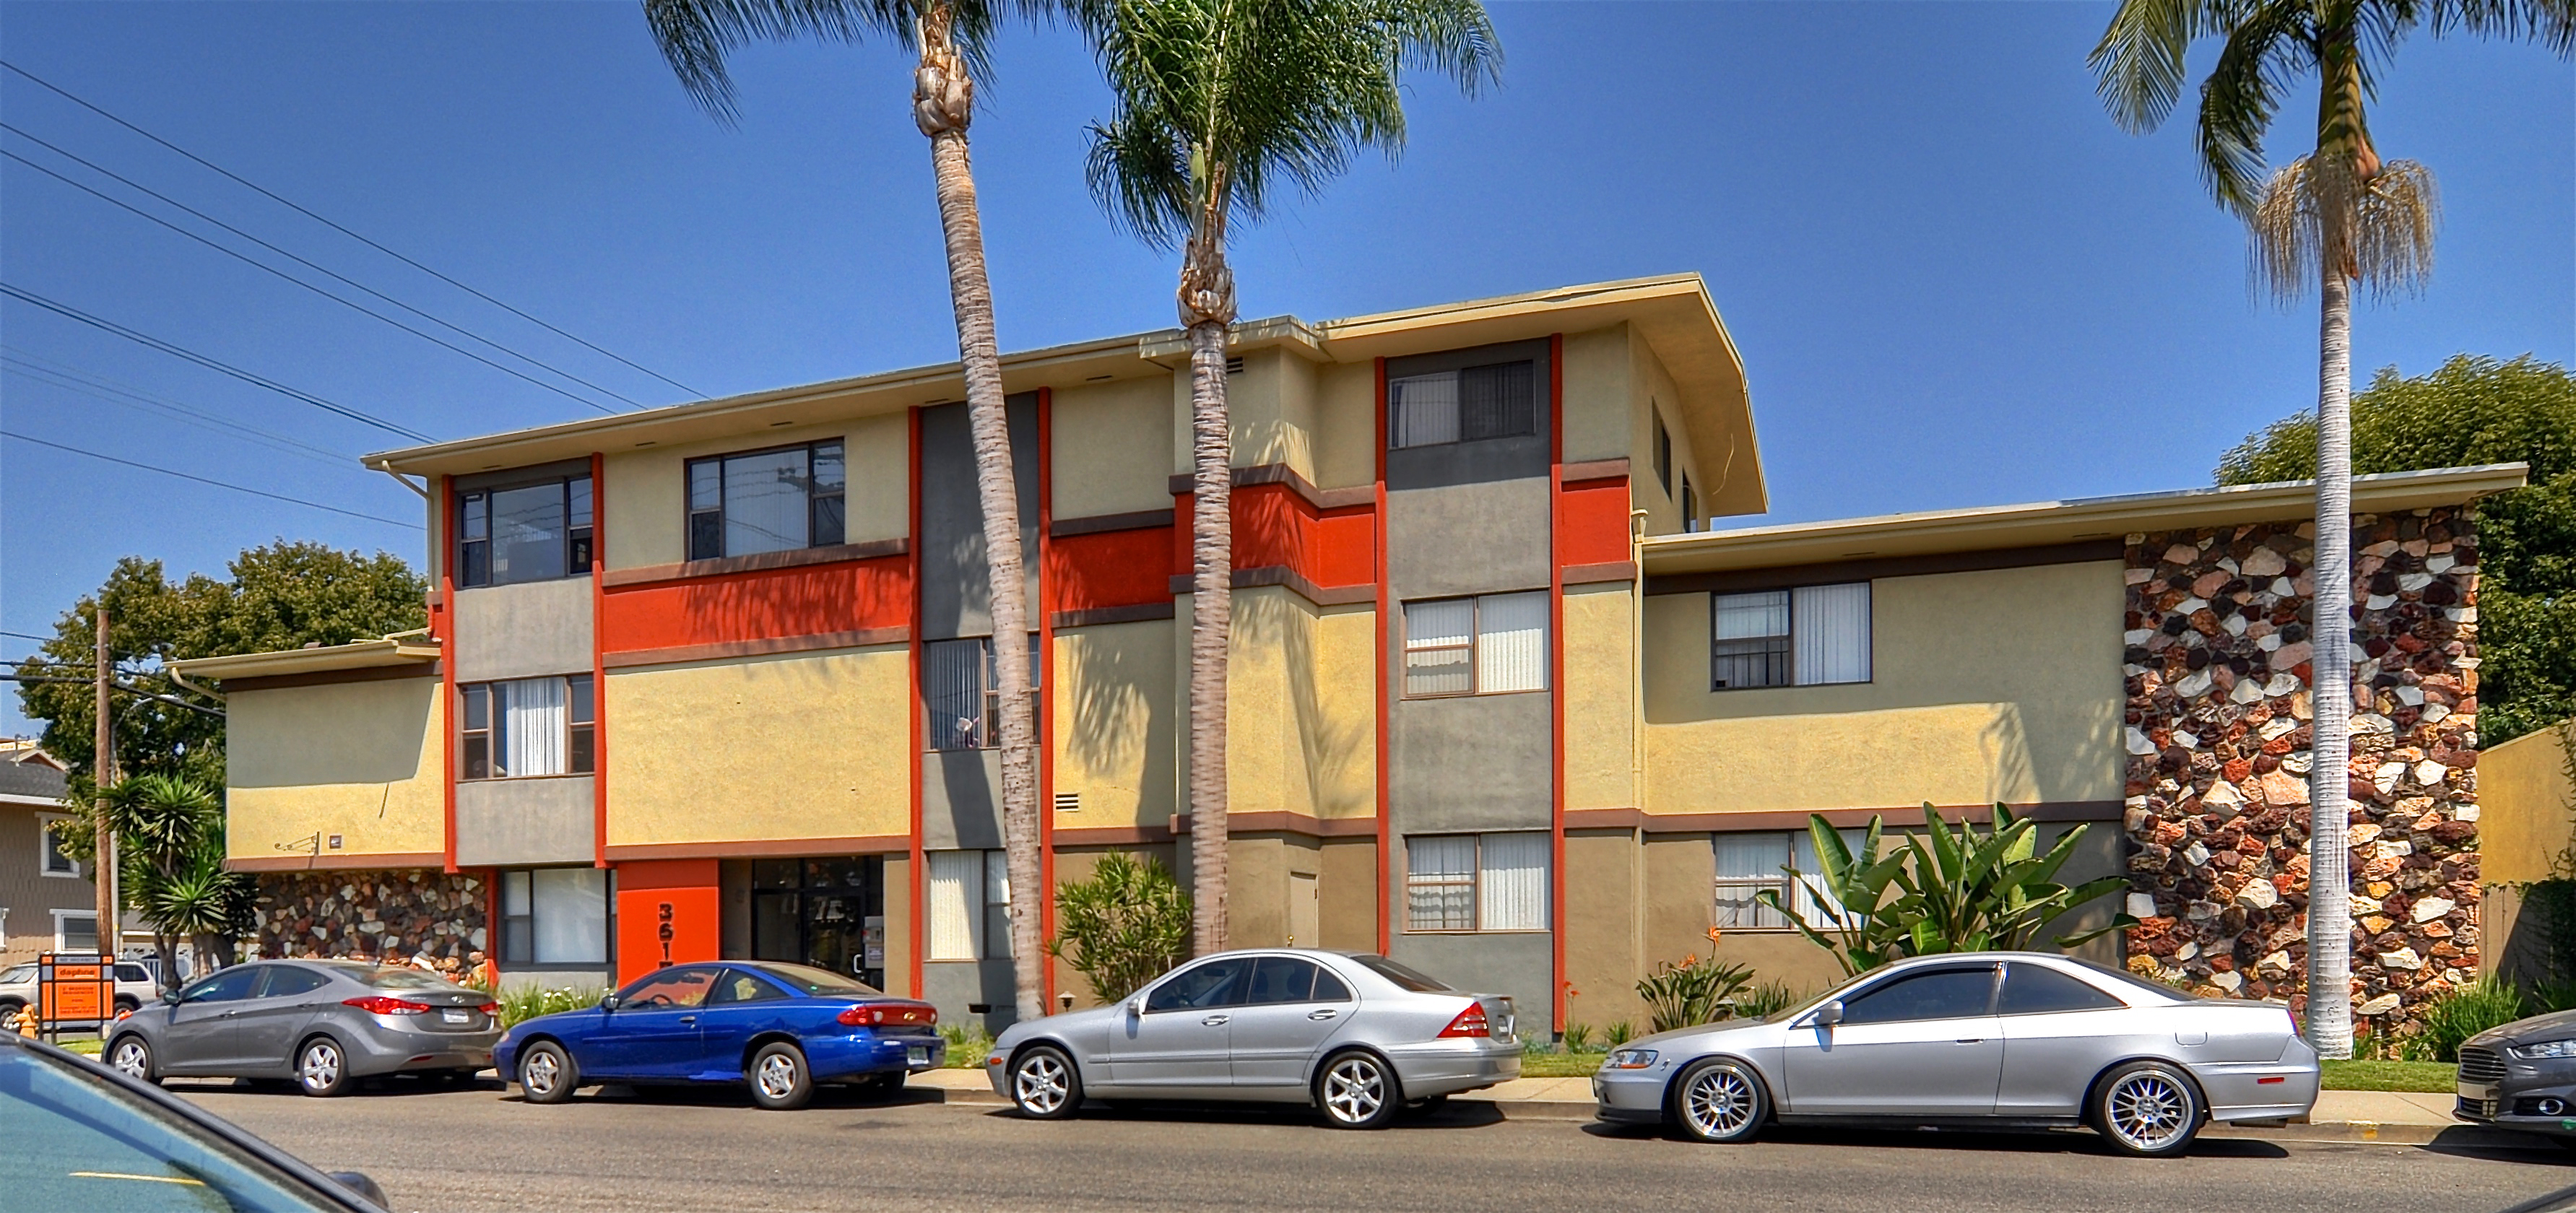 Apartments For Sale In Long Beach Ca